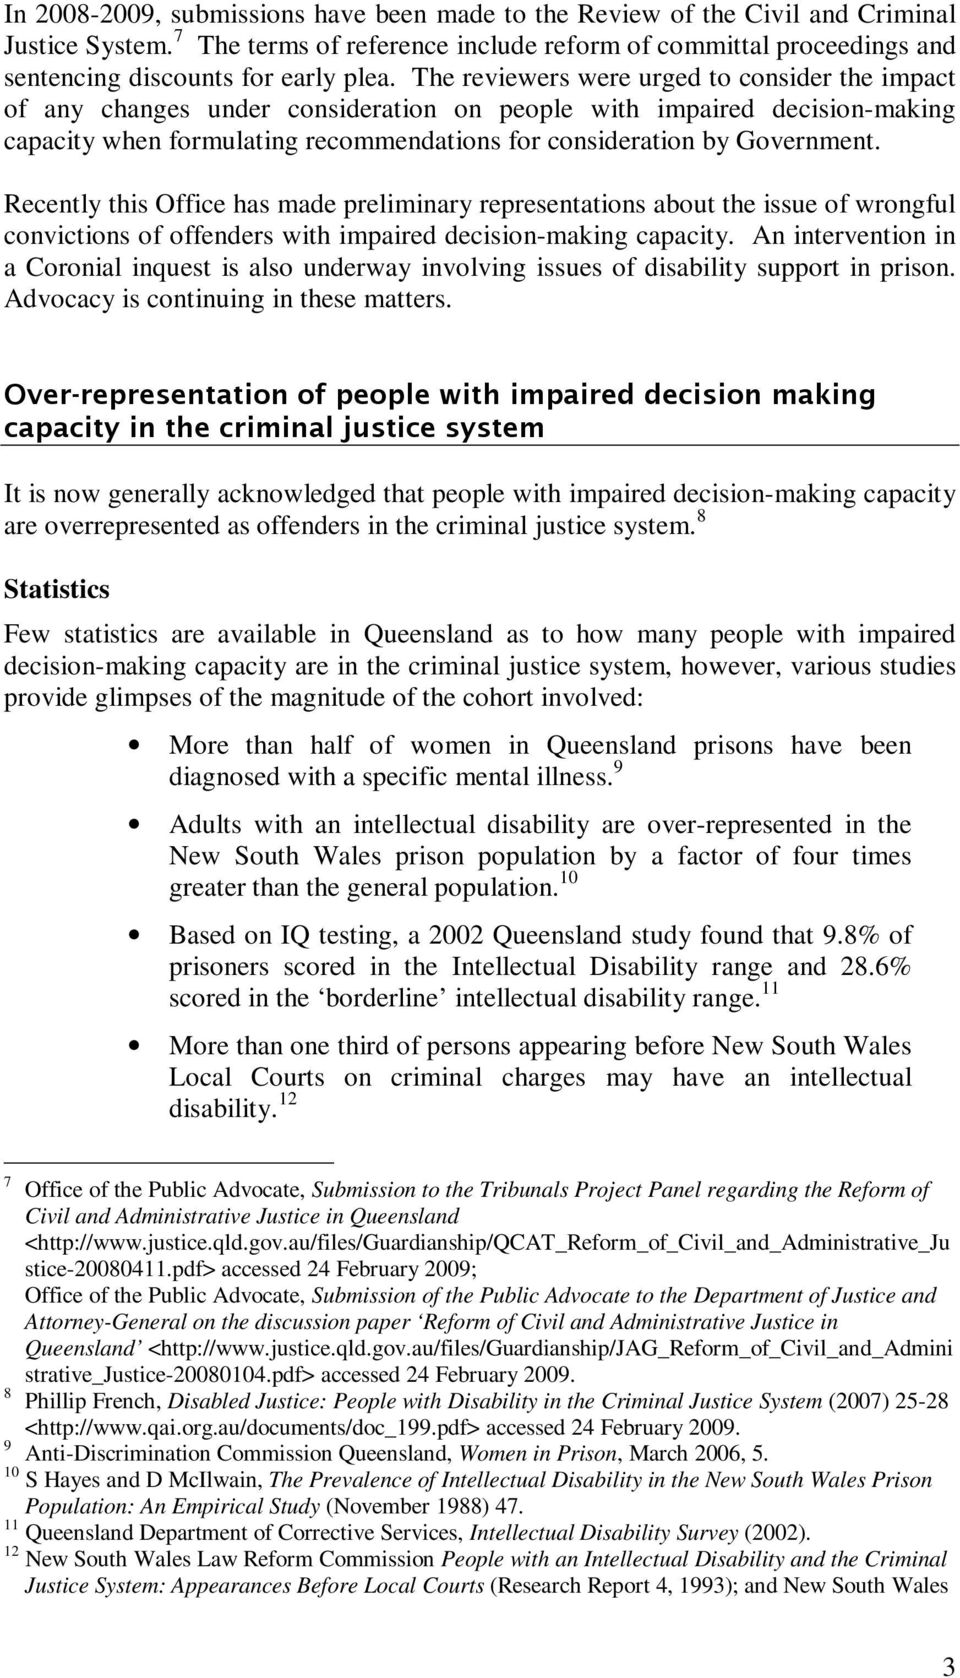 The reviewers were urged to consider the impact of any changes under consideration on people with impaired decision-making capacity when formulating recommendations for consideration by Government.